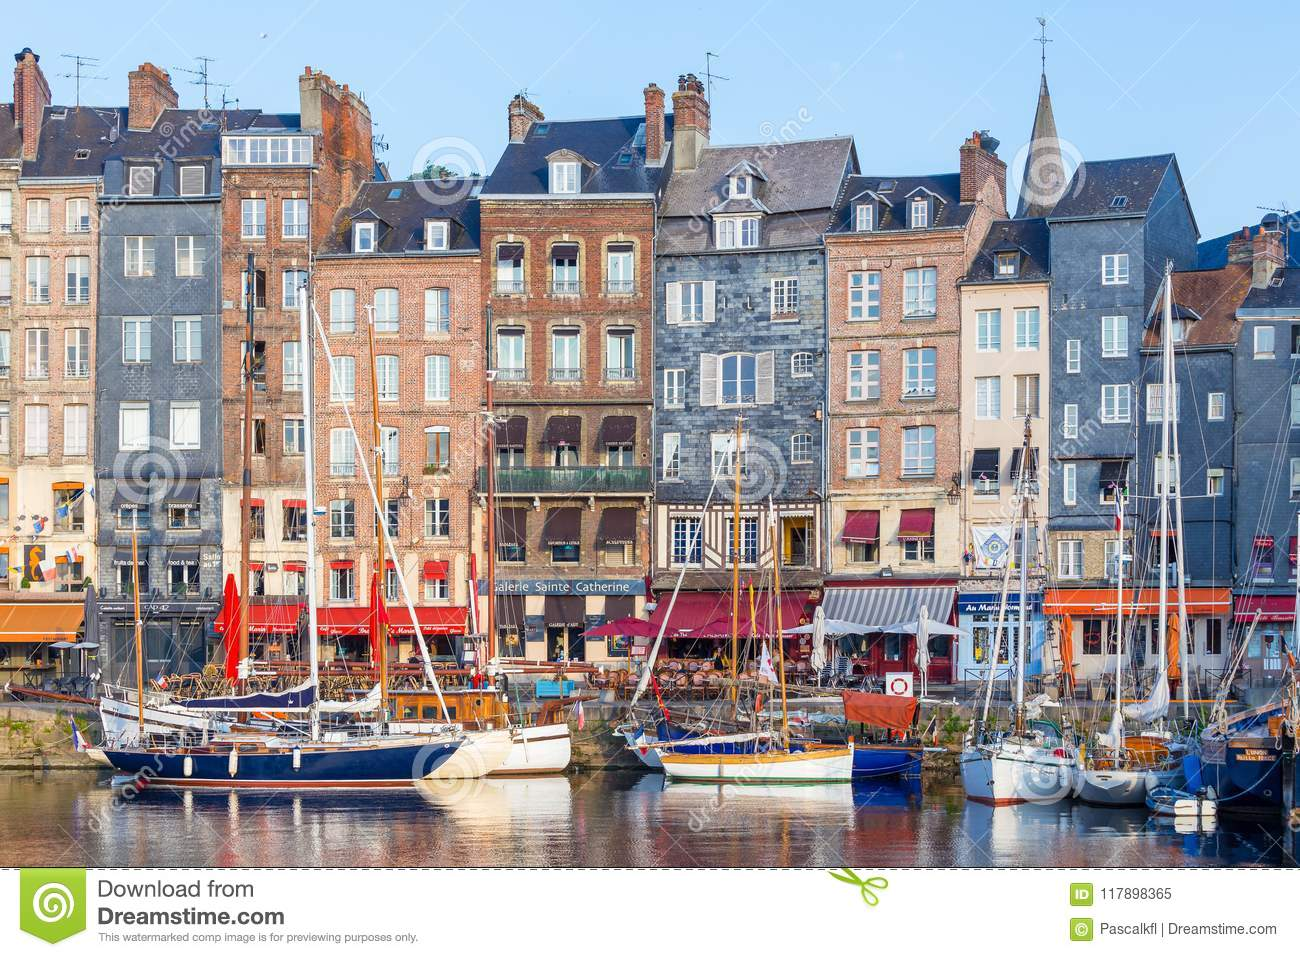 Honfleur, France - August 31, 2016: Picturesque old harbour at the Normandy village of Honfleur France with boats and cafes